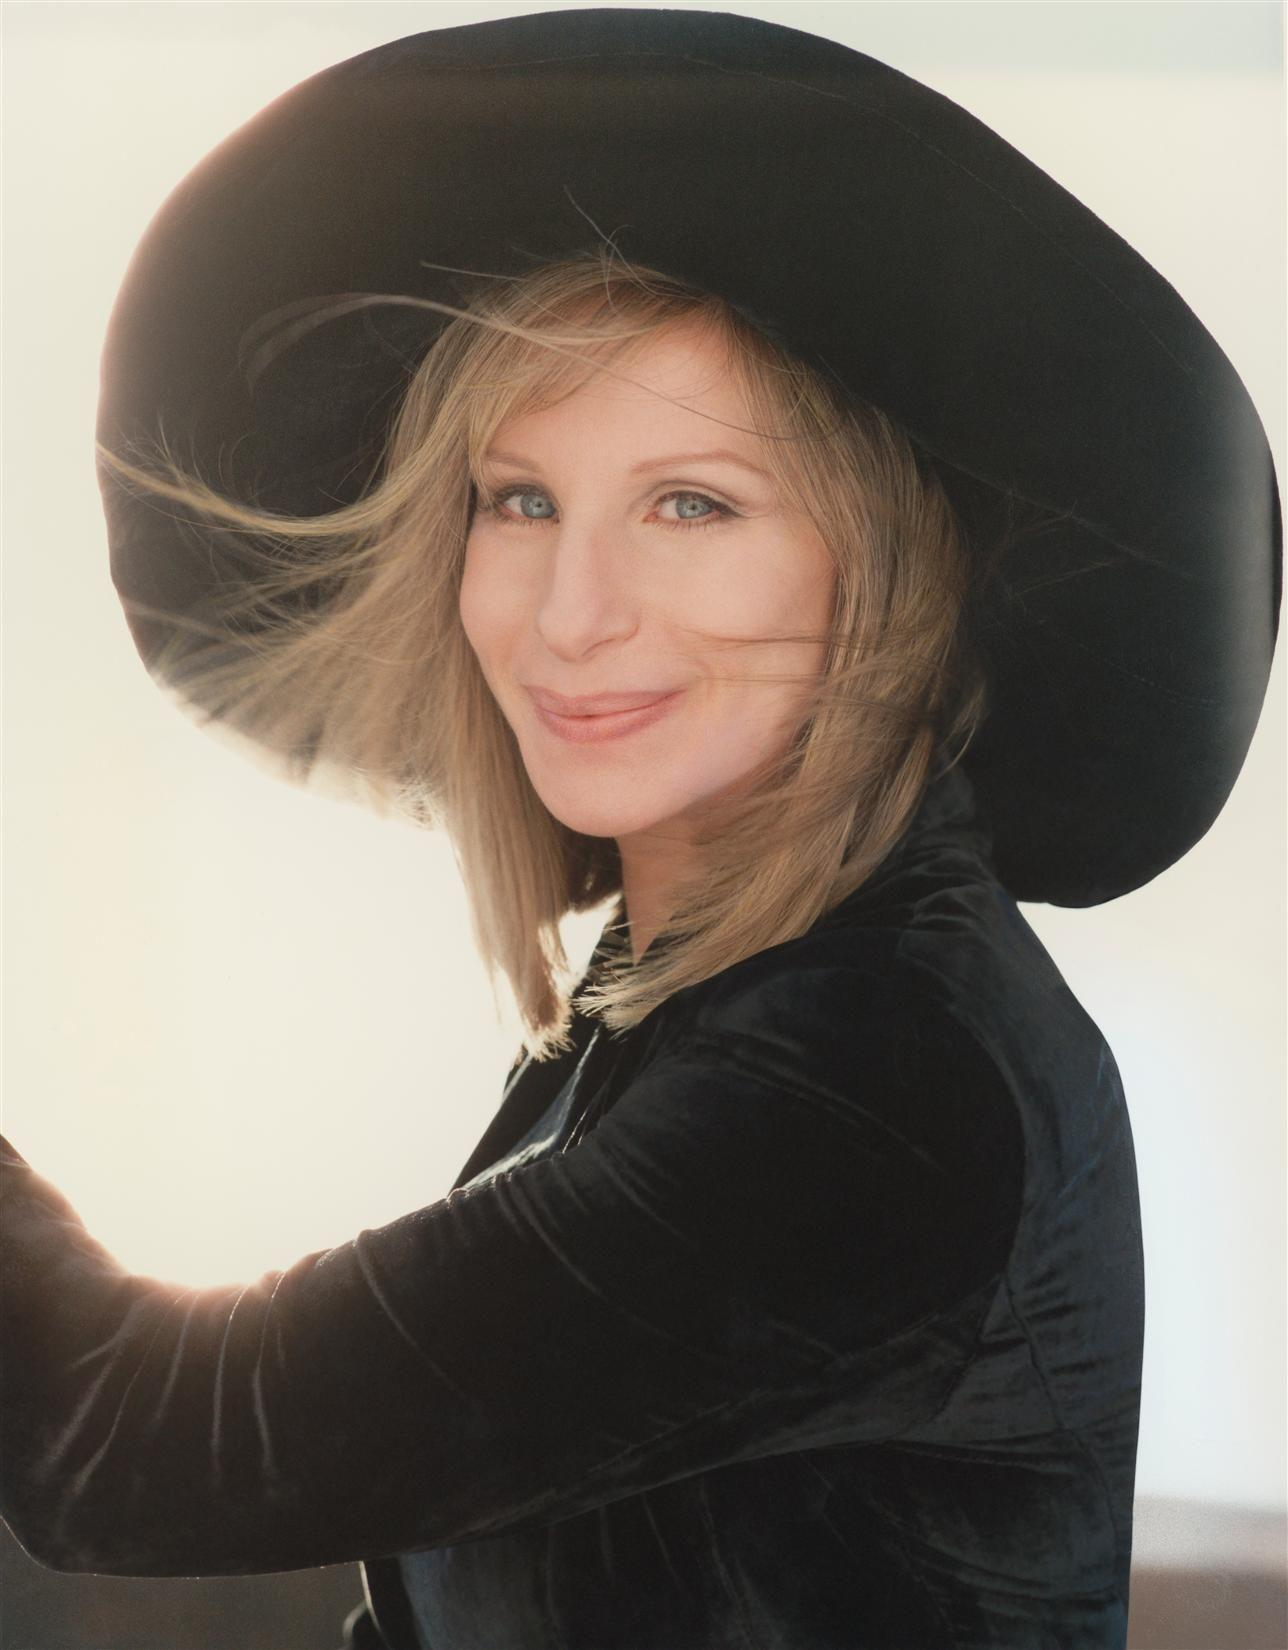 Barbra Streisand photo 45 of 52 pics, wallpapers